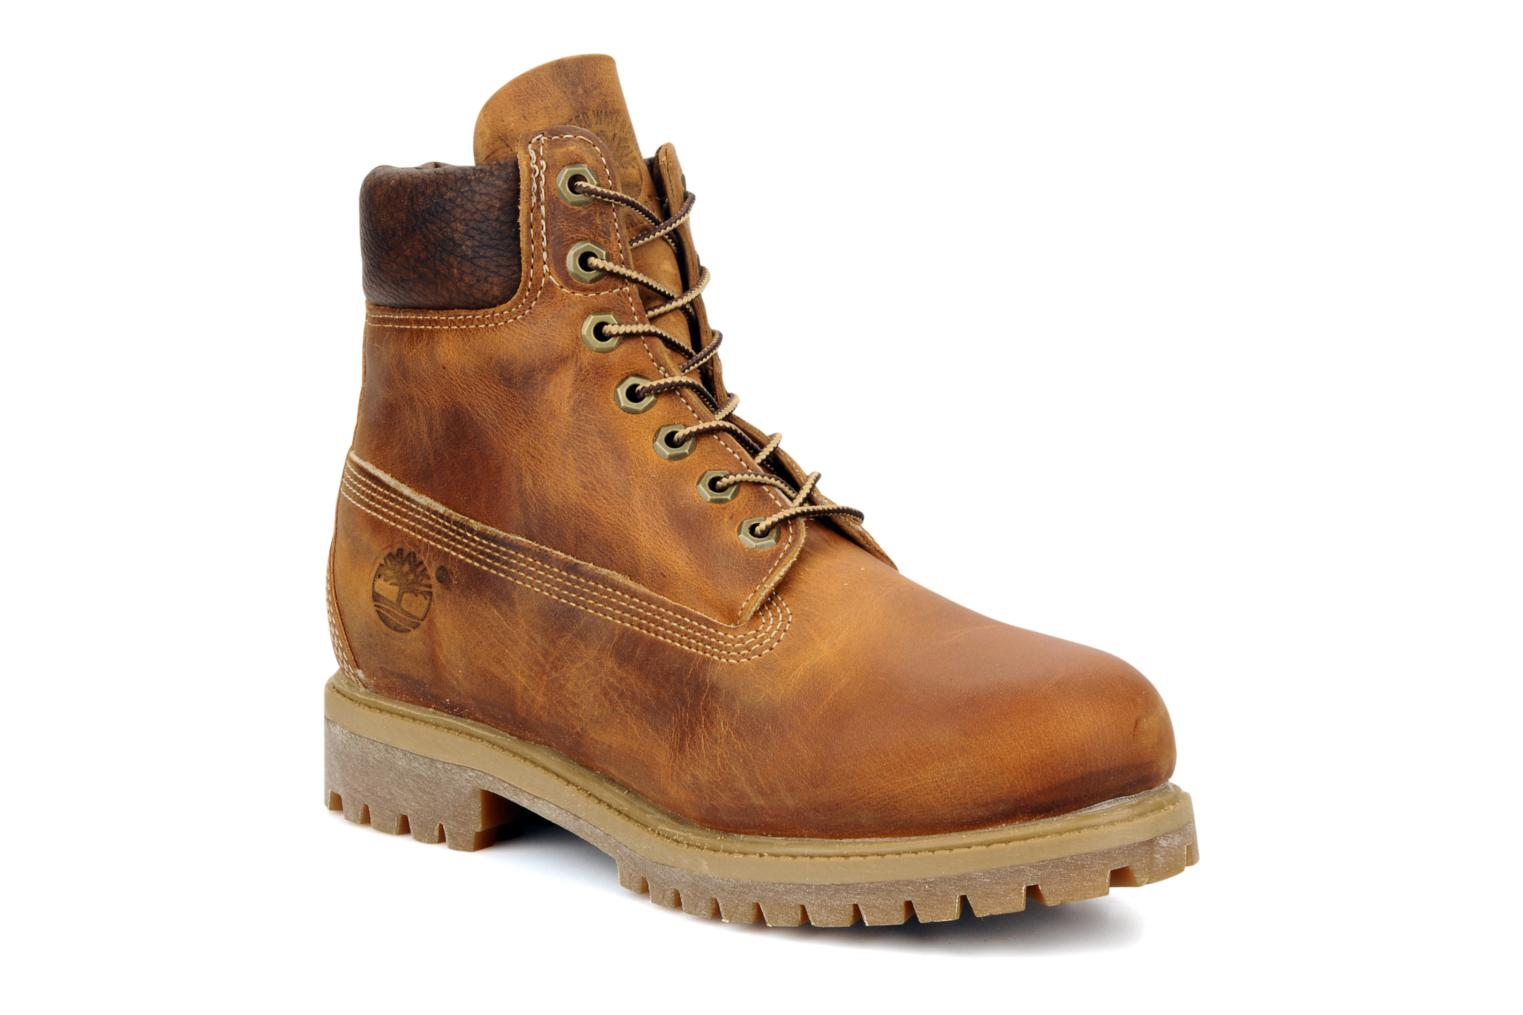 6in premium boot Burnt orange worn oiled